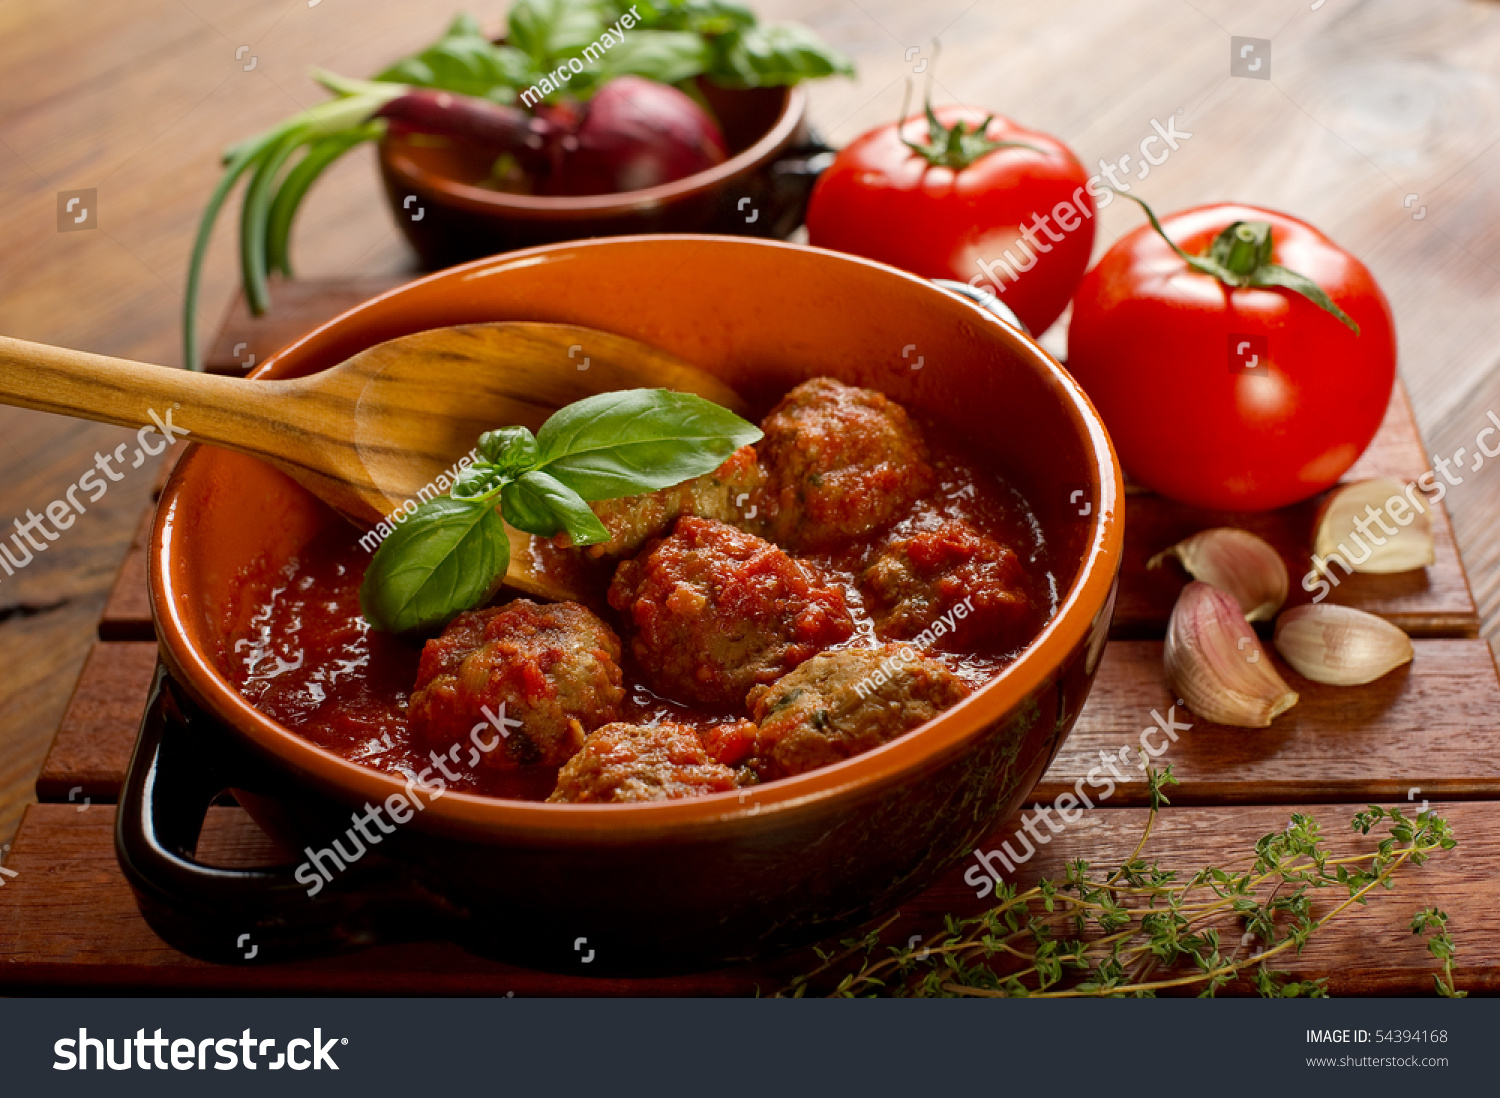 Bowl With Meatballs And Tomato Sauce Stock Photo 54394168 ...